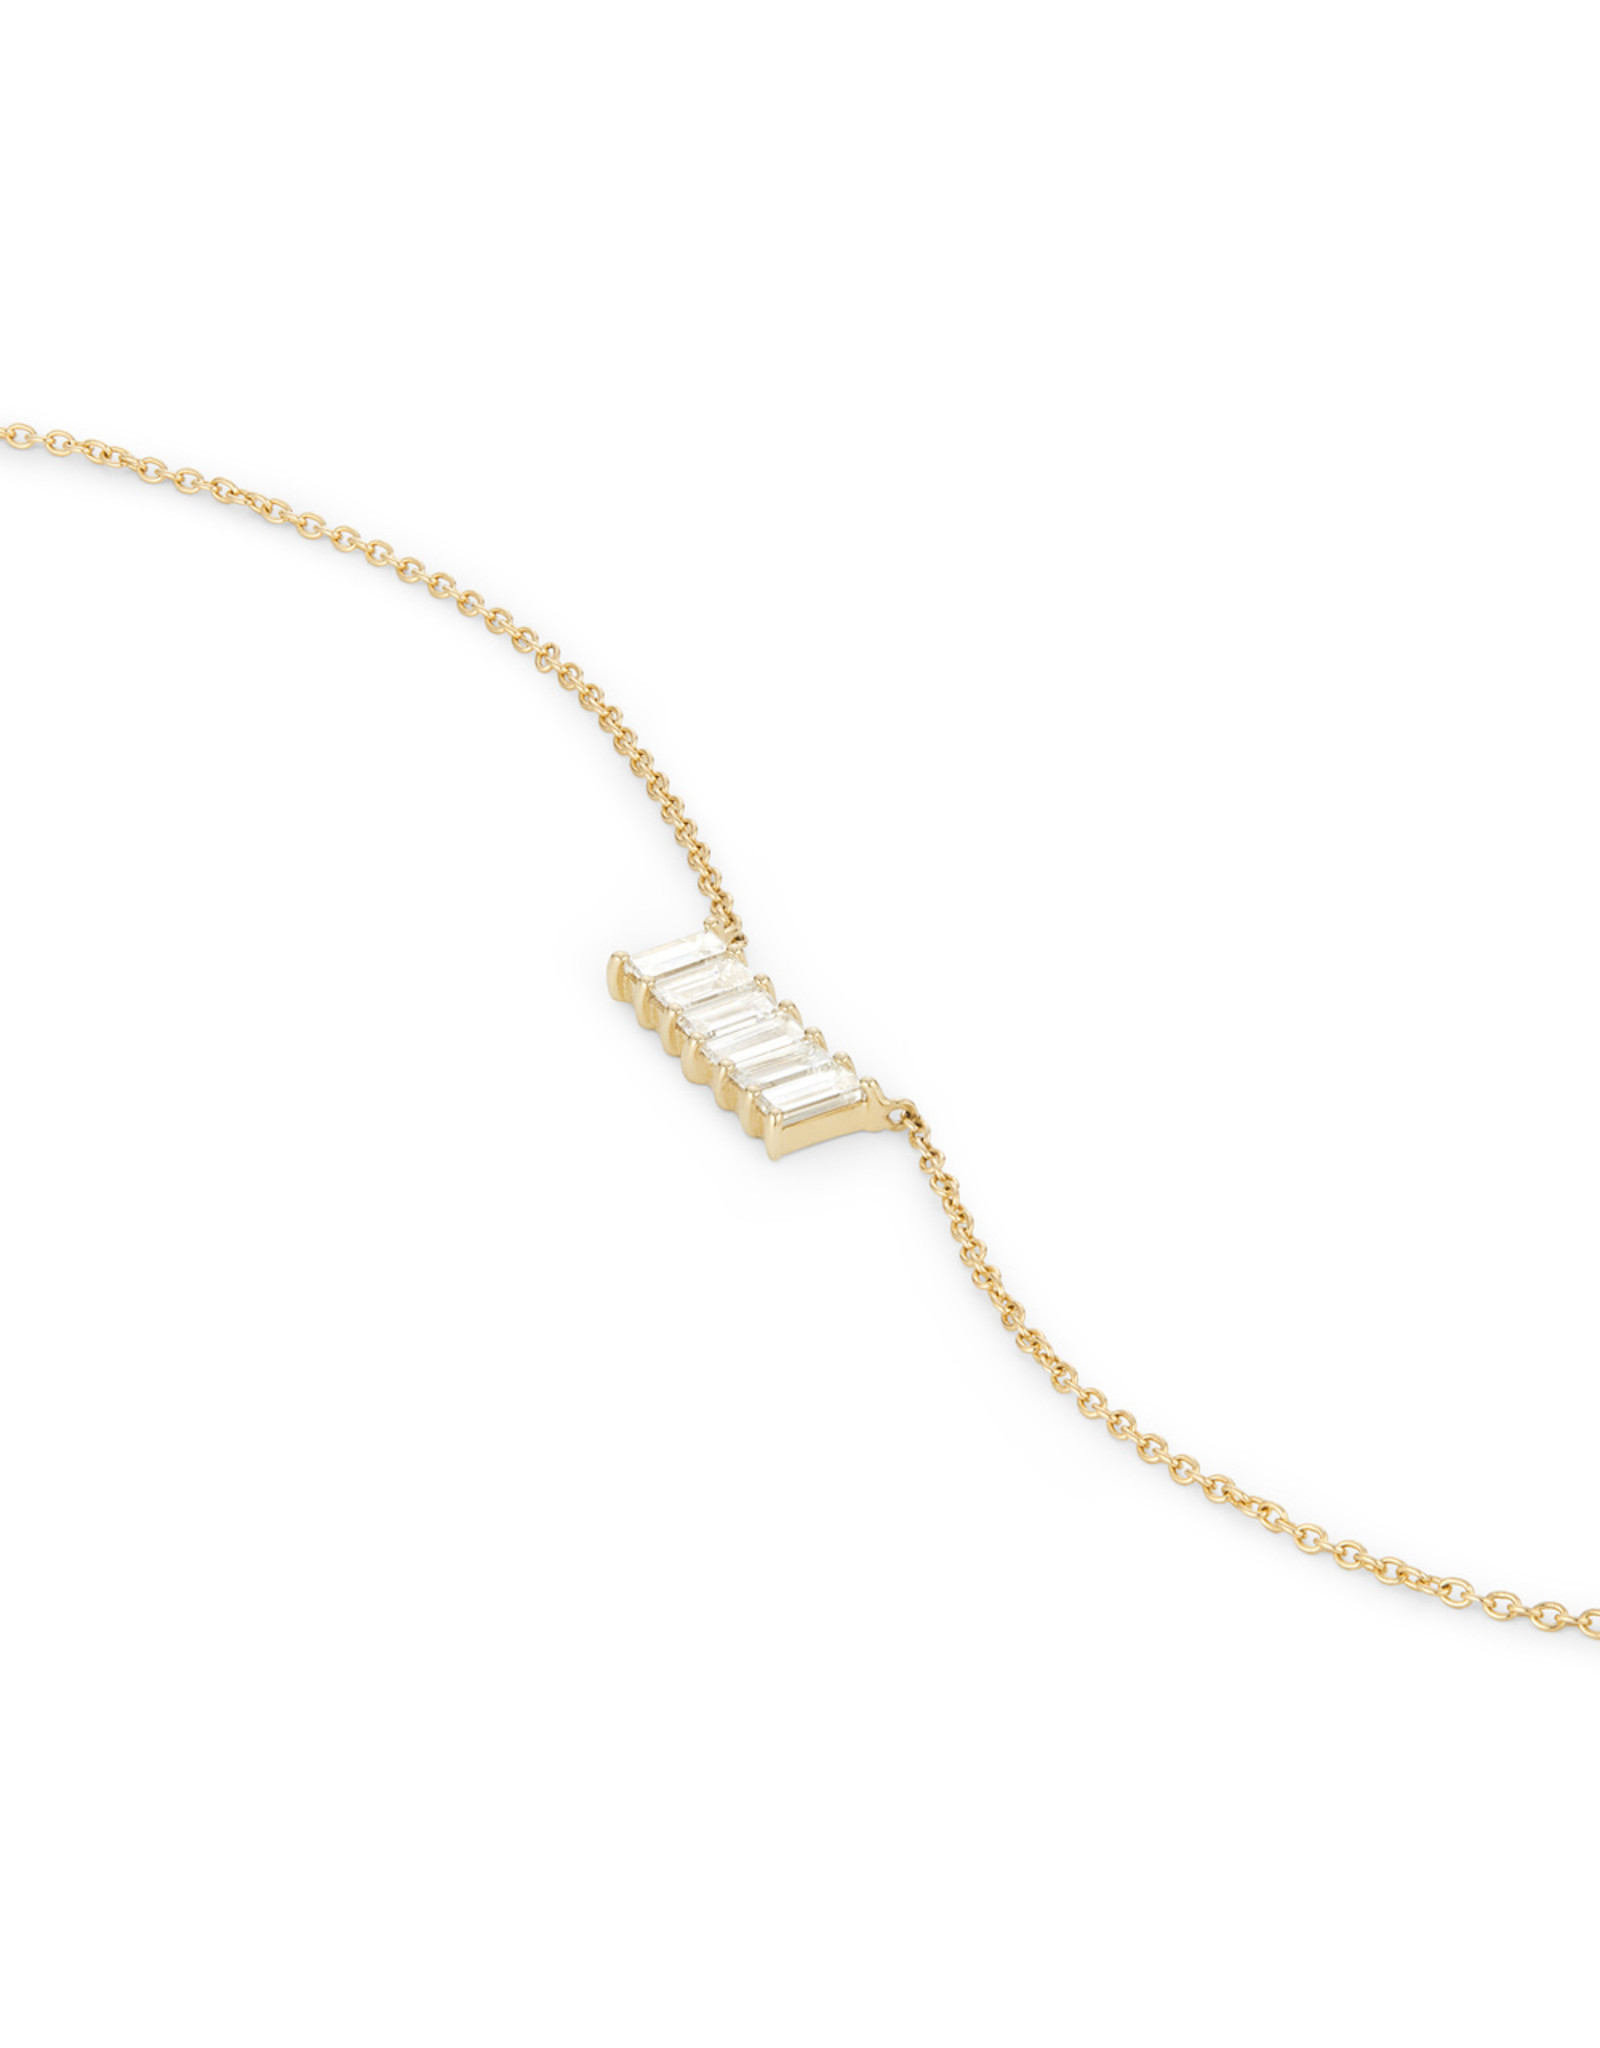 Eriness Eriness Diamond Baguette Staple Necklace - Yellow Gold / White Diamonds